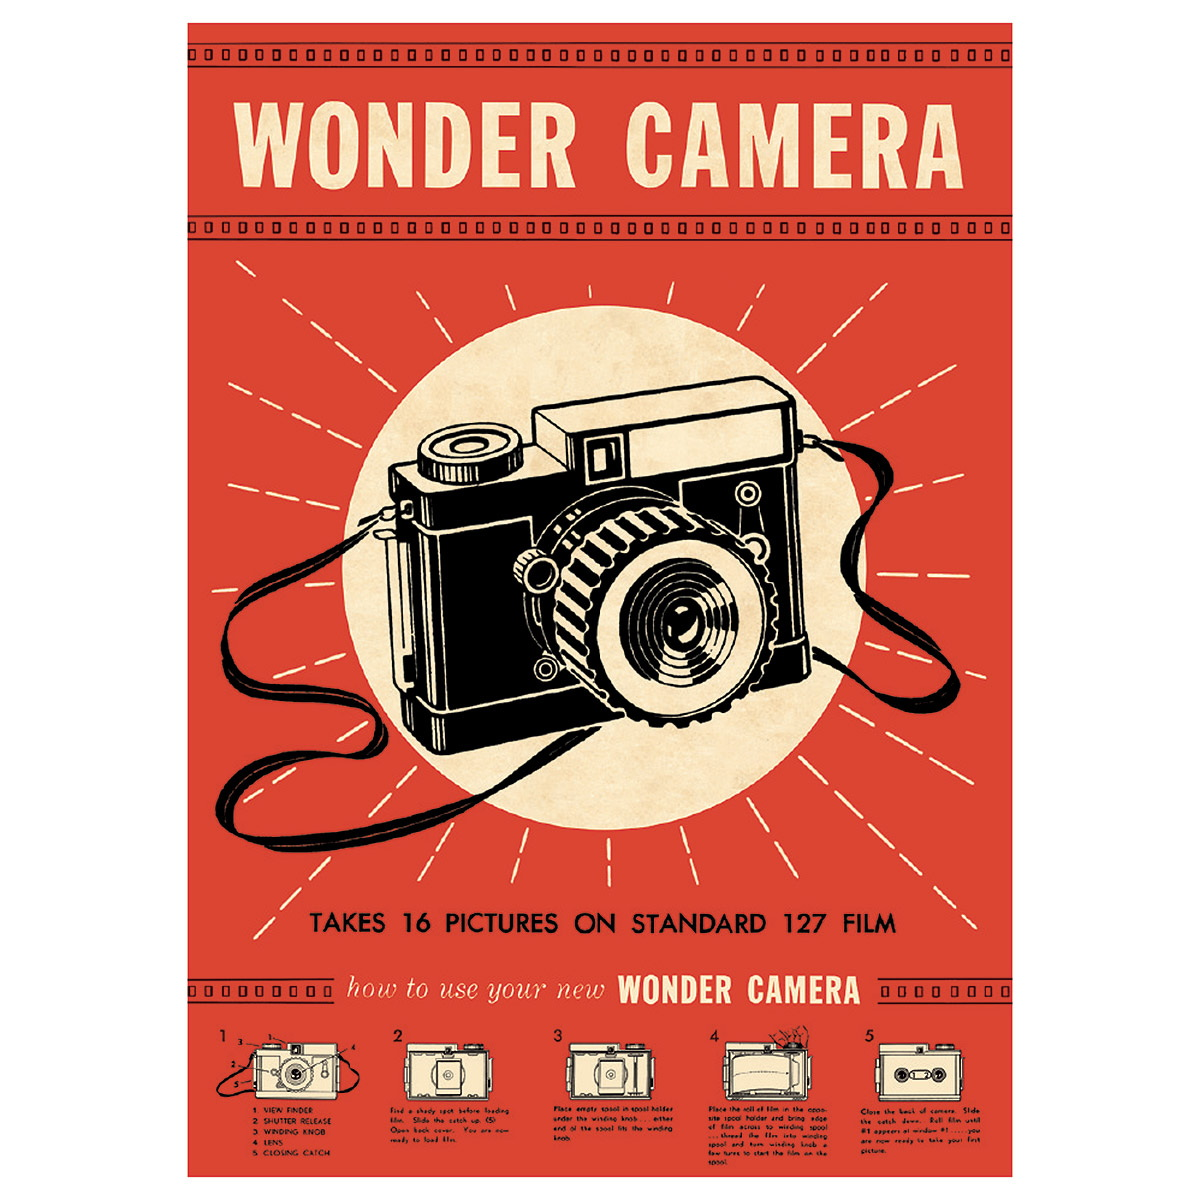 Details about Wonder Camera Advertisement Vintage Style Poster Ephemera